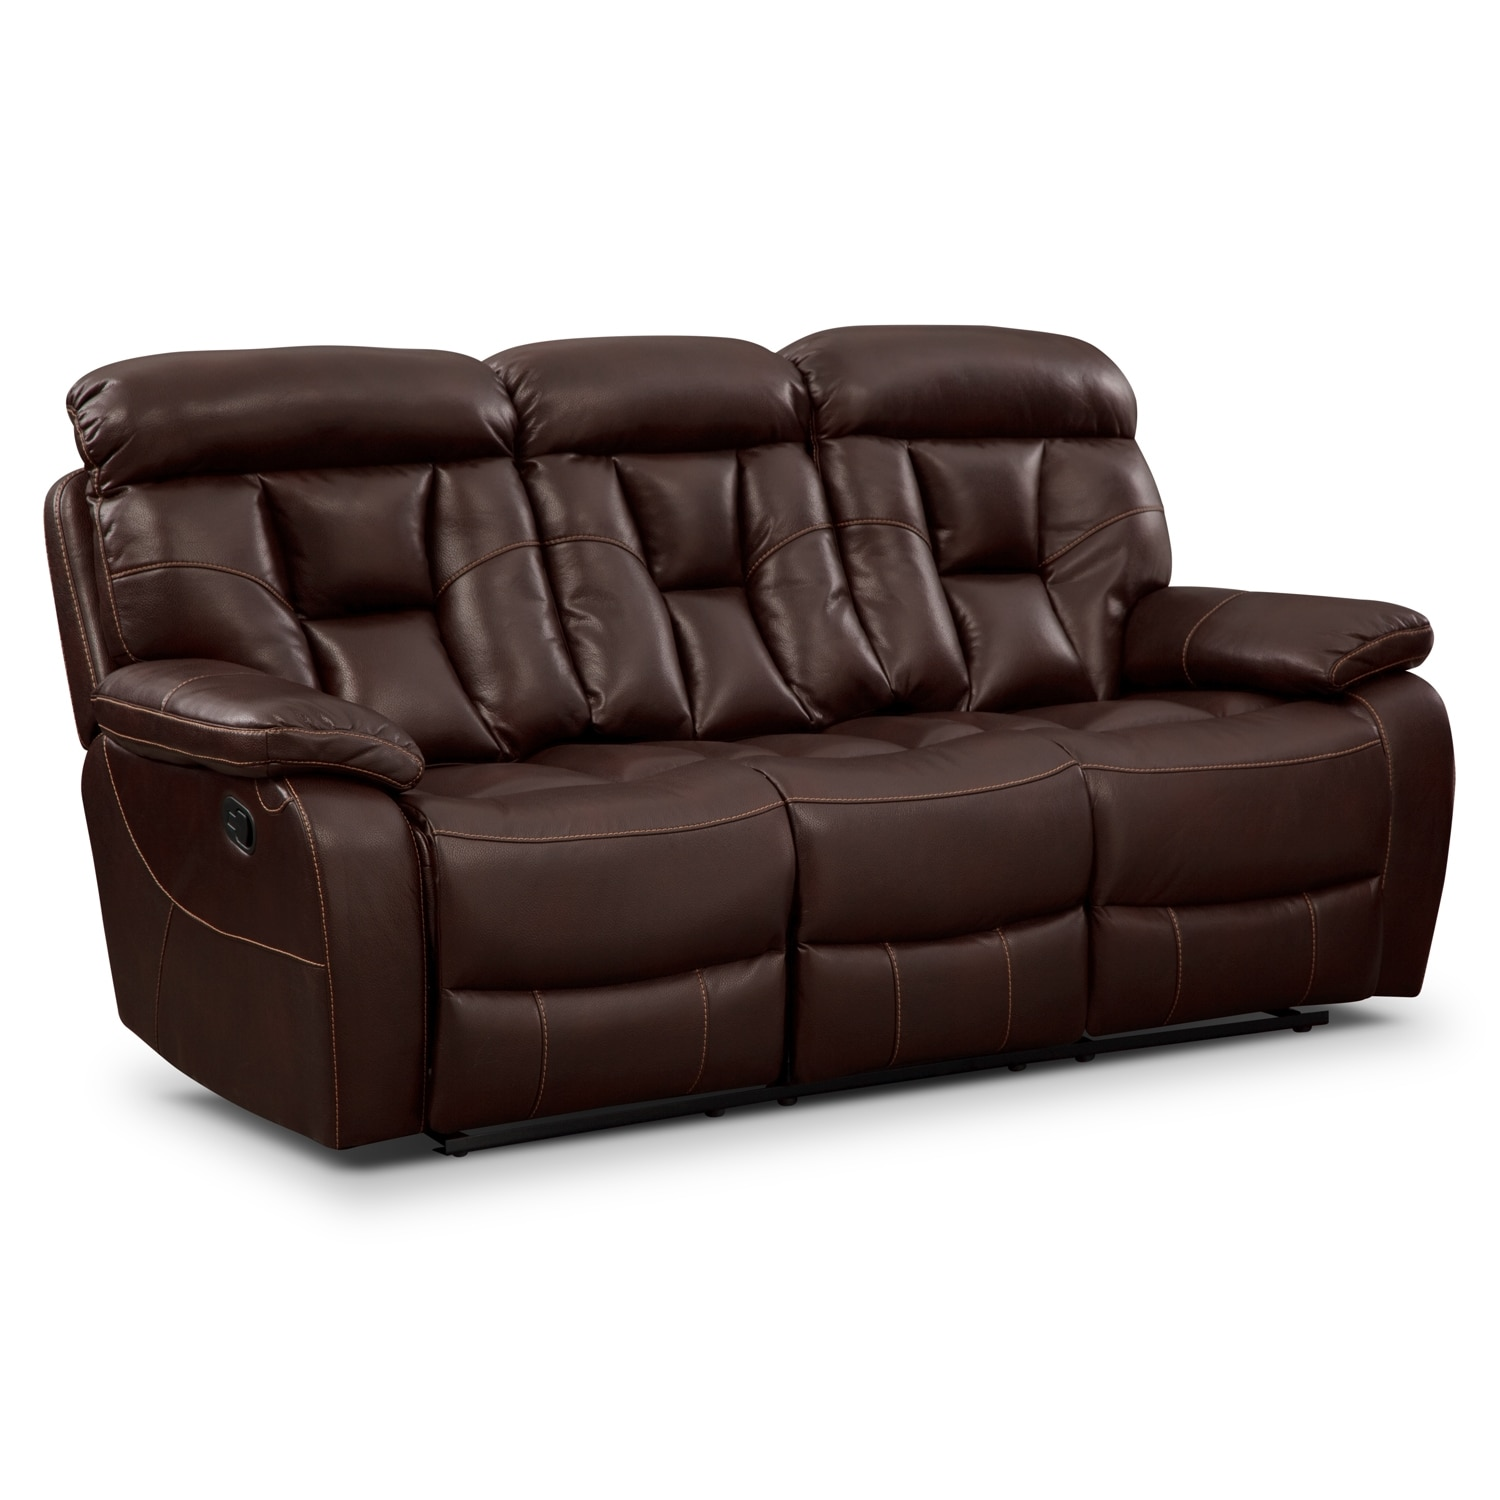 Dakota reclining sofa american signature furniture Leather loveseat recliners